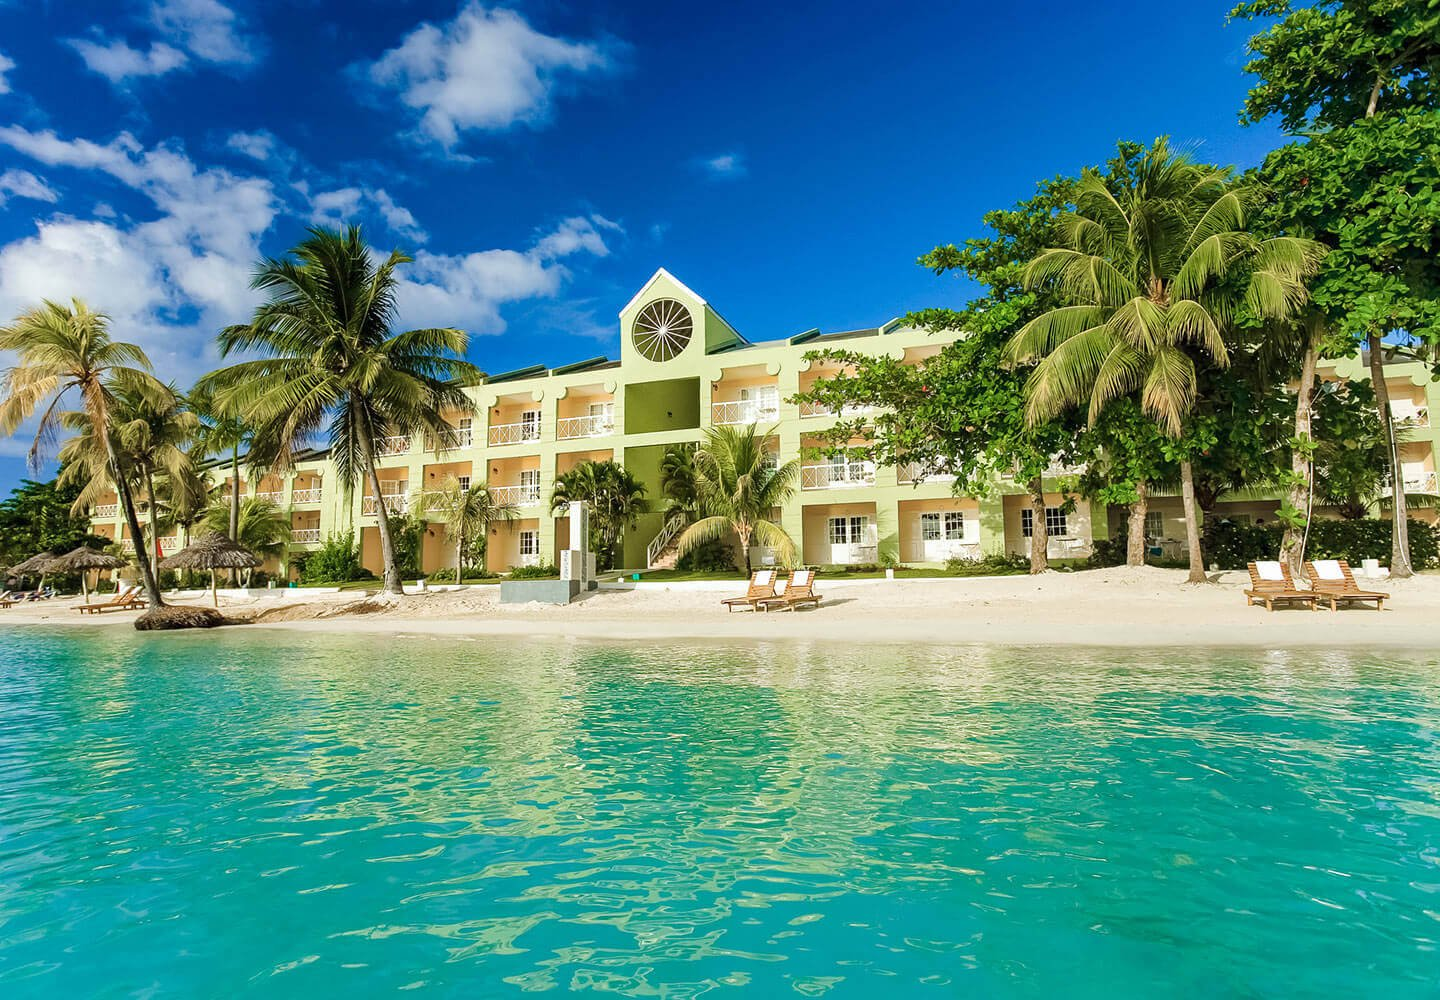 Sandals Negril - Adults Only Vacations